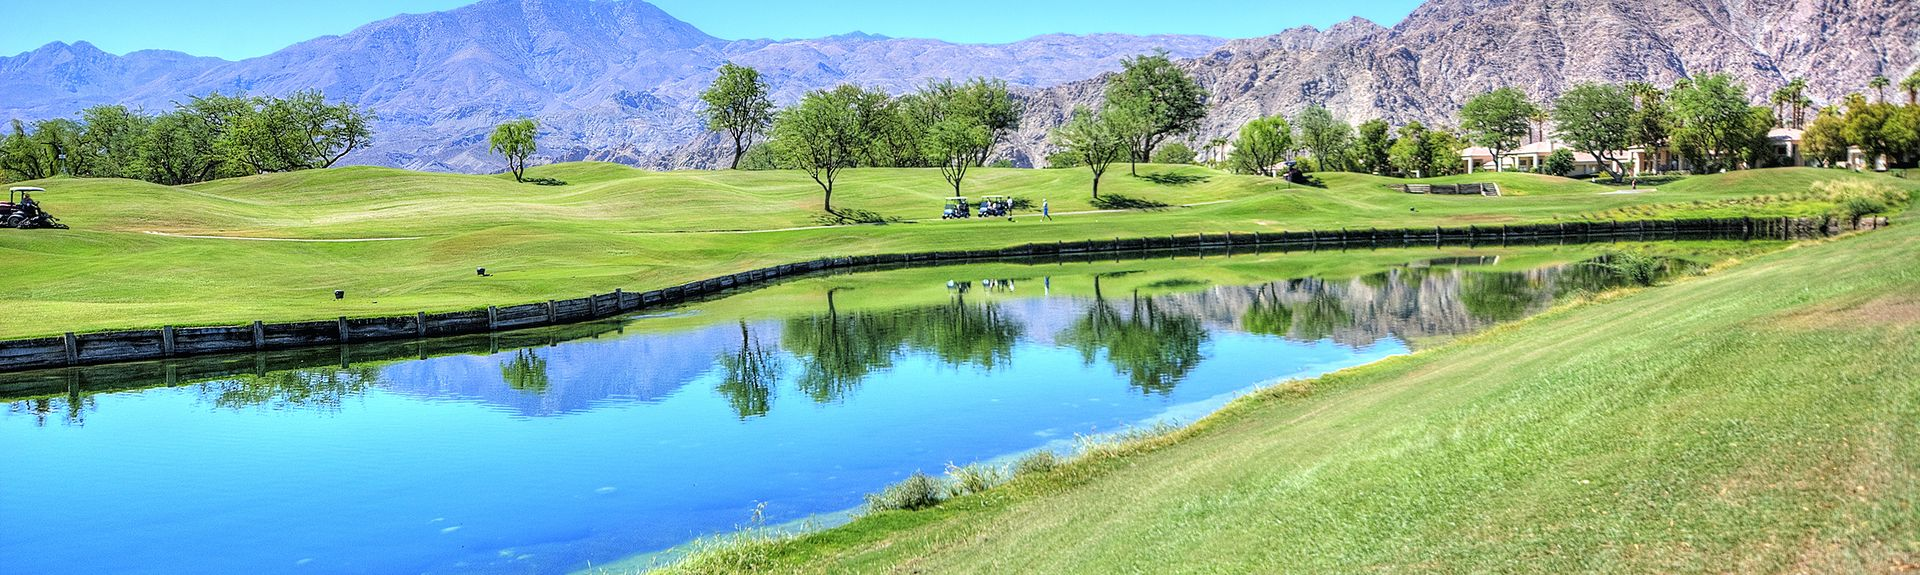 PGA West (La Quinta, California, United States)